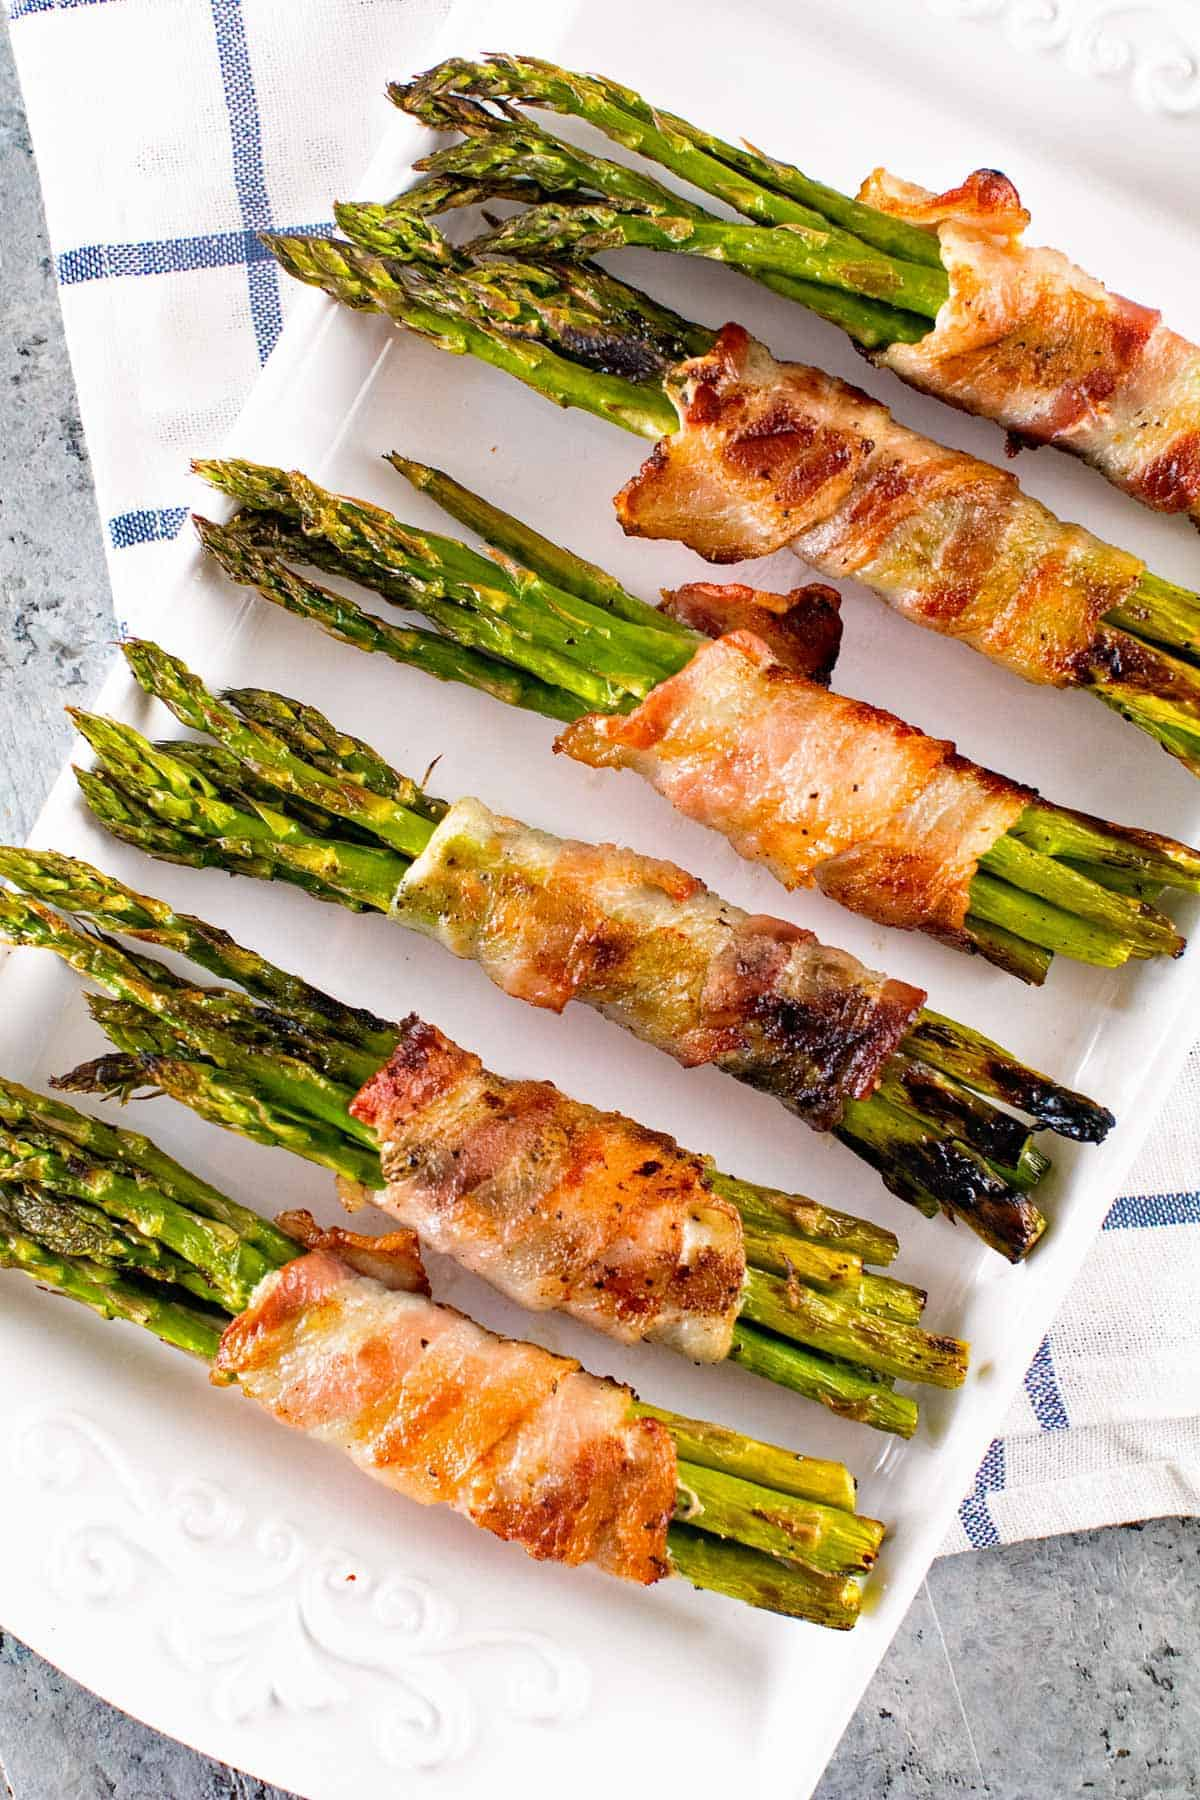 Grilled Bacon Wrapped Asparagus ~ Easy, Grilled Side Dish! Crispy Bacon Wrapped Around Tender Asparagus Spears!